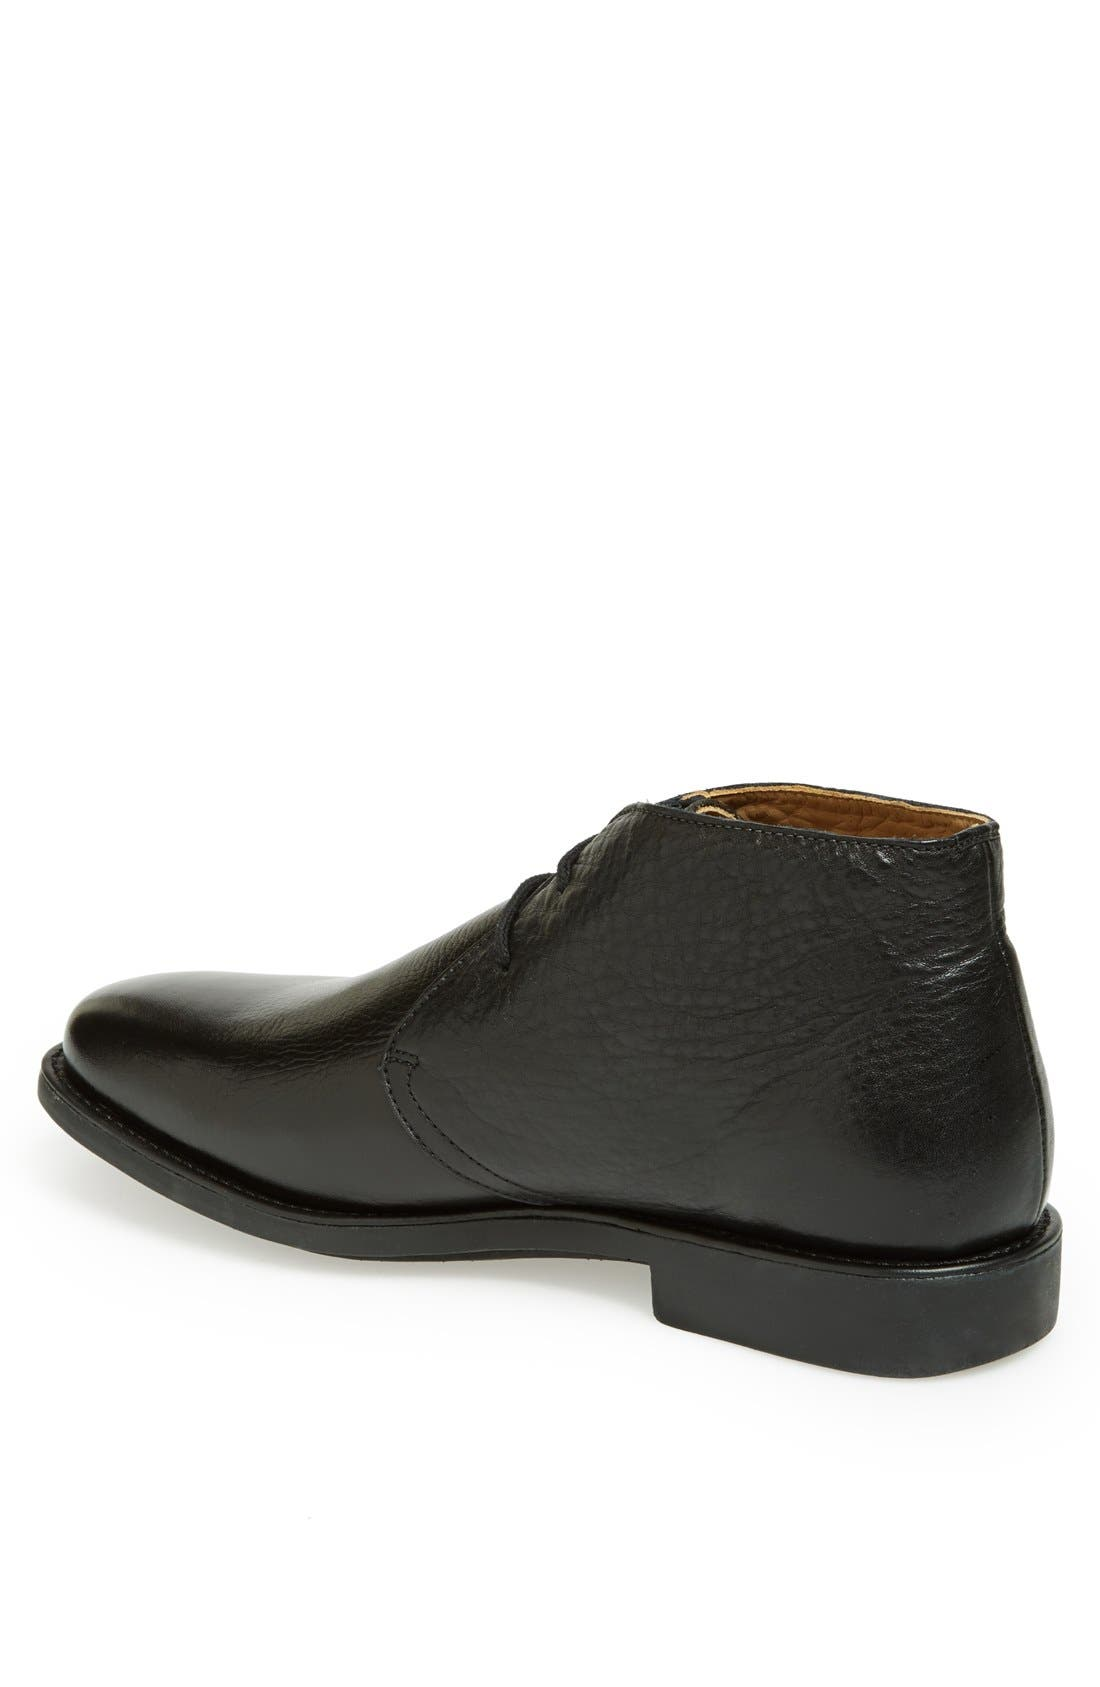 Alternate Image 2  - Anatomic & Co Londrina Chukka Boot (Men)